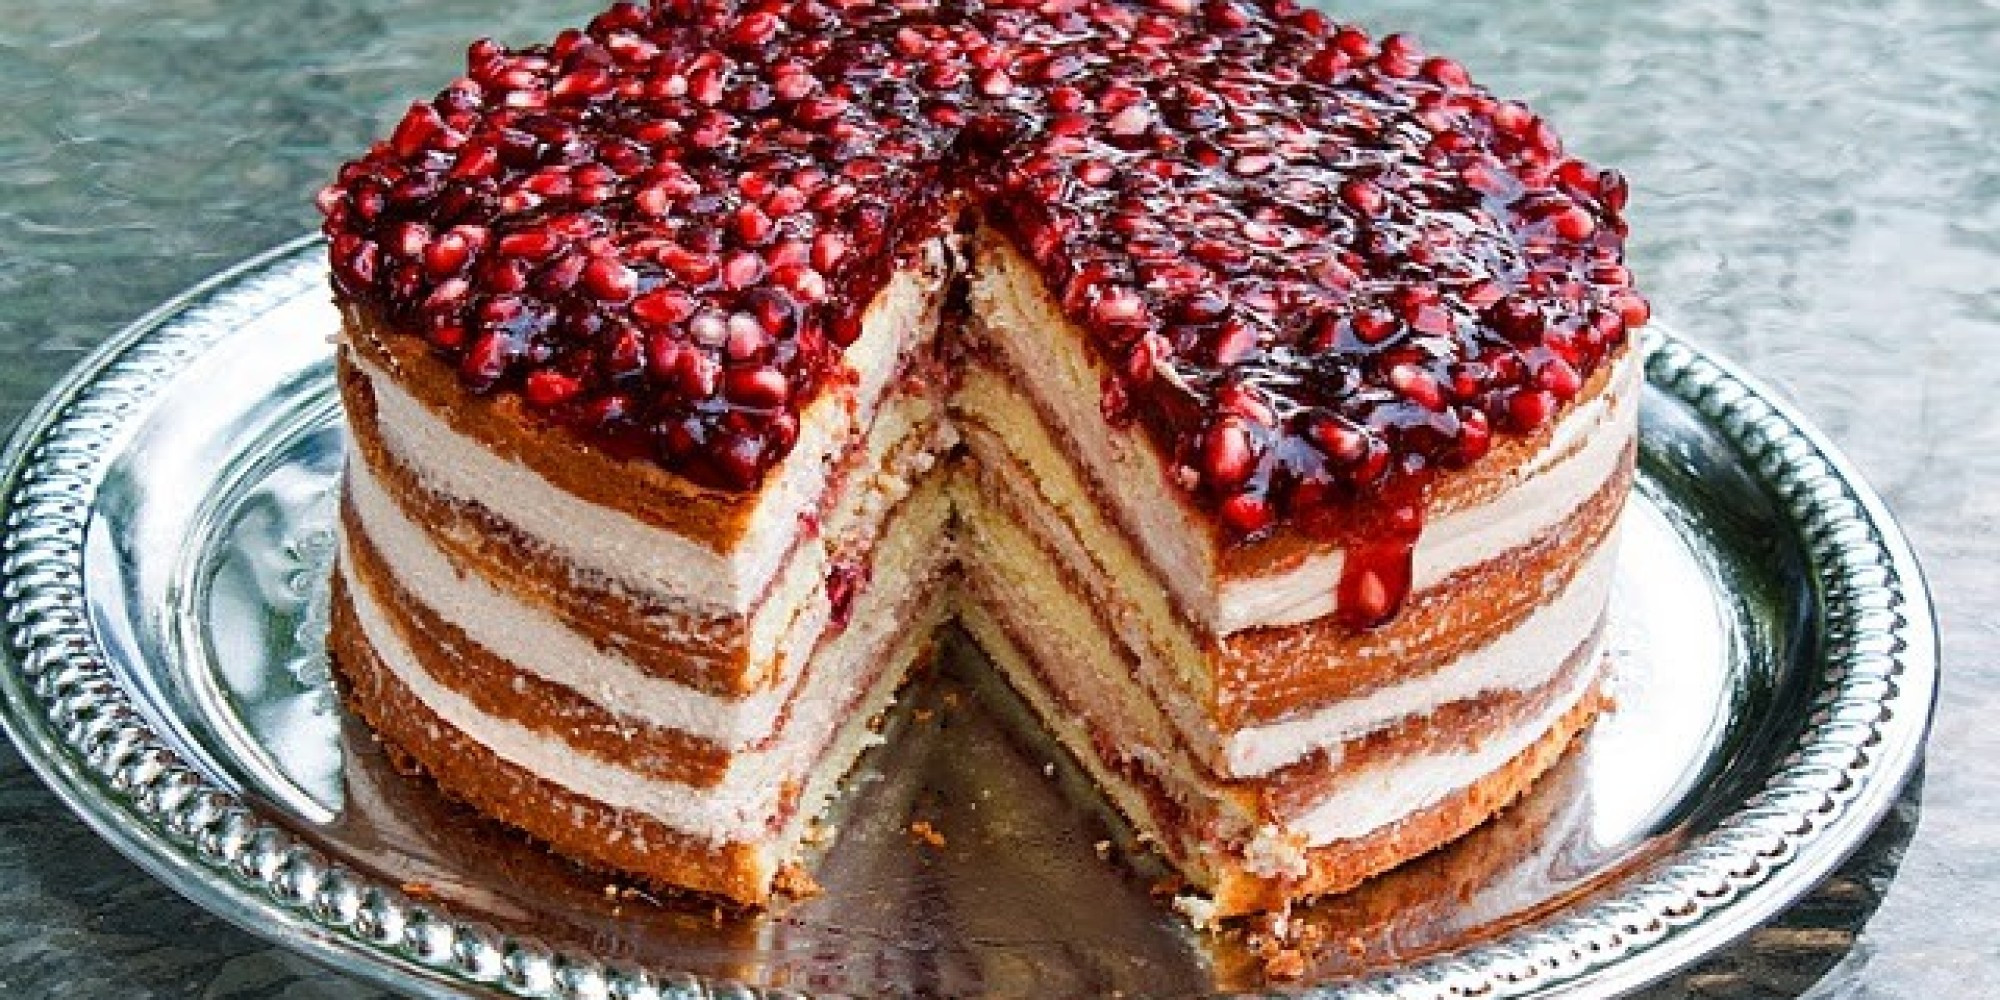 Great Christmas Desserts  The Most Stunning Christmas Dessert Recipes Ever PHOTOS